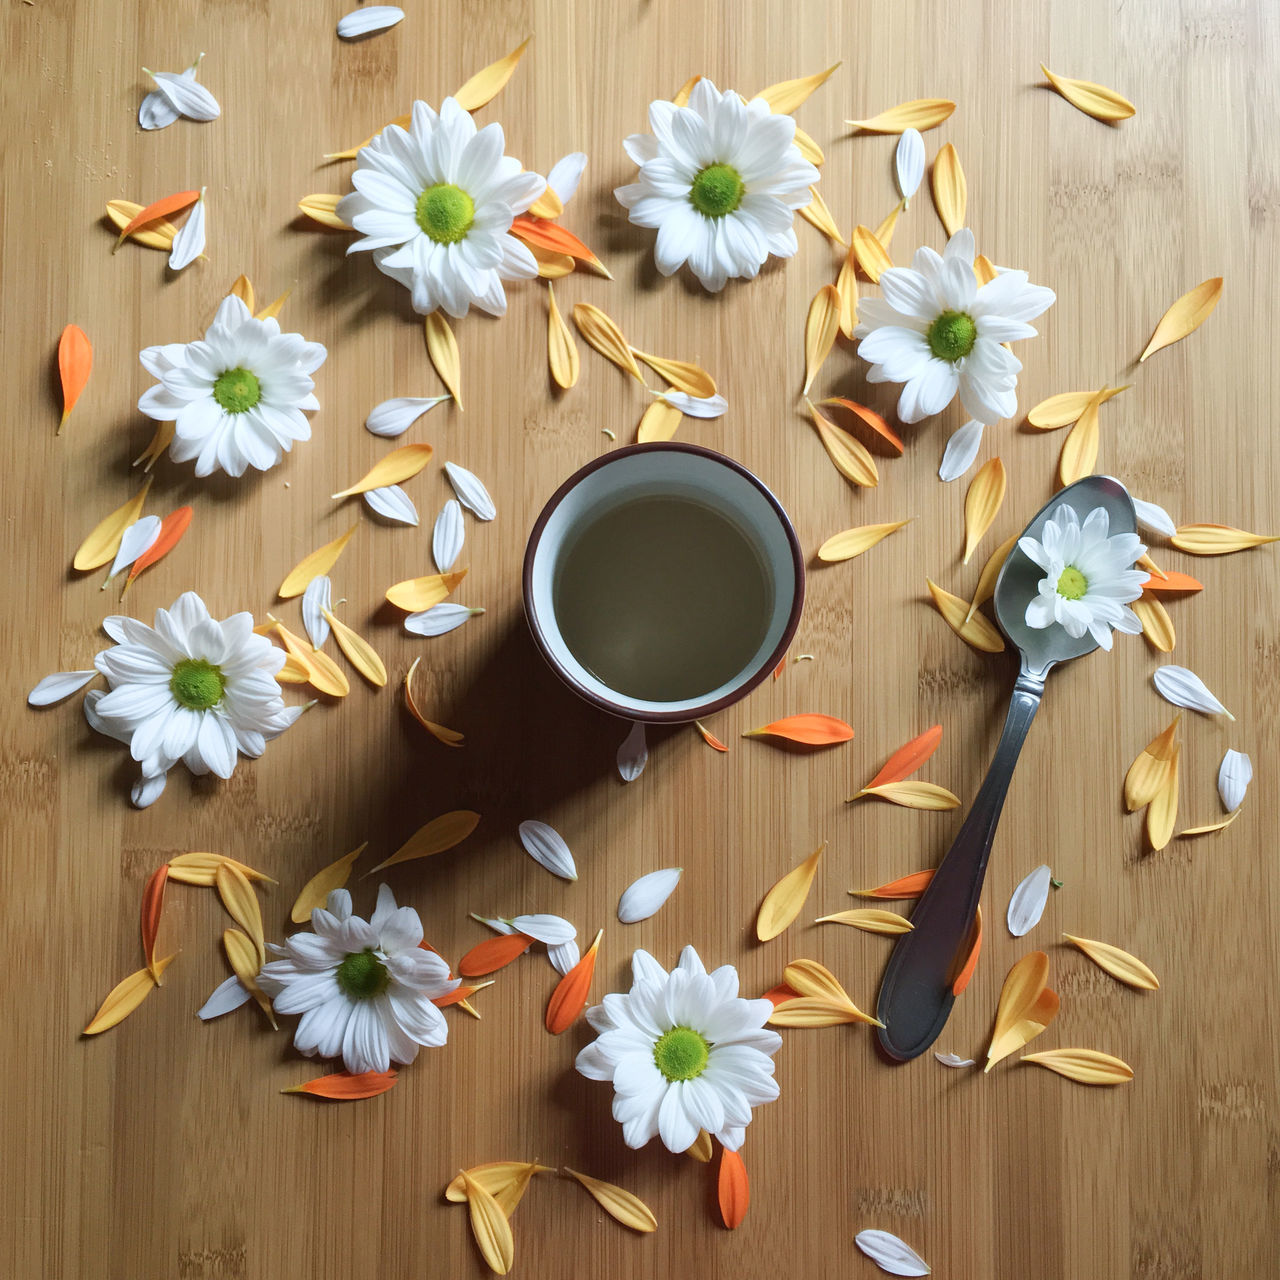 Close-up Cup Daisy Day Drink Flat Lay Flower Flower Arrangement Flower Head Food And Drink Freshness High Angle View Indoors  No People Petal Studio Shot Tea - Hot Drink Tea Cup Wood - Material Wood Grain